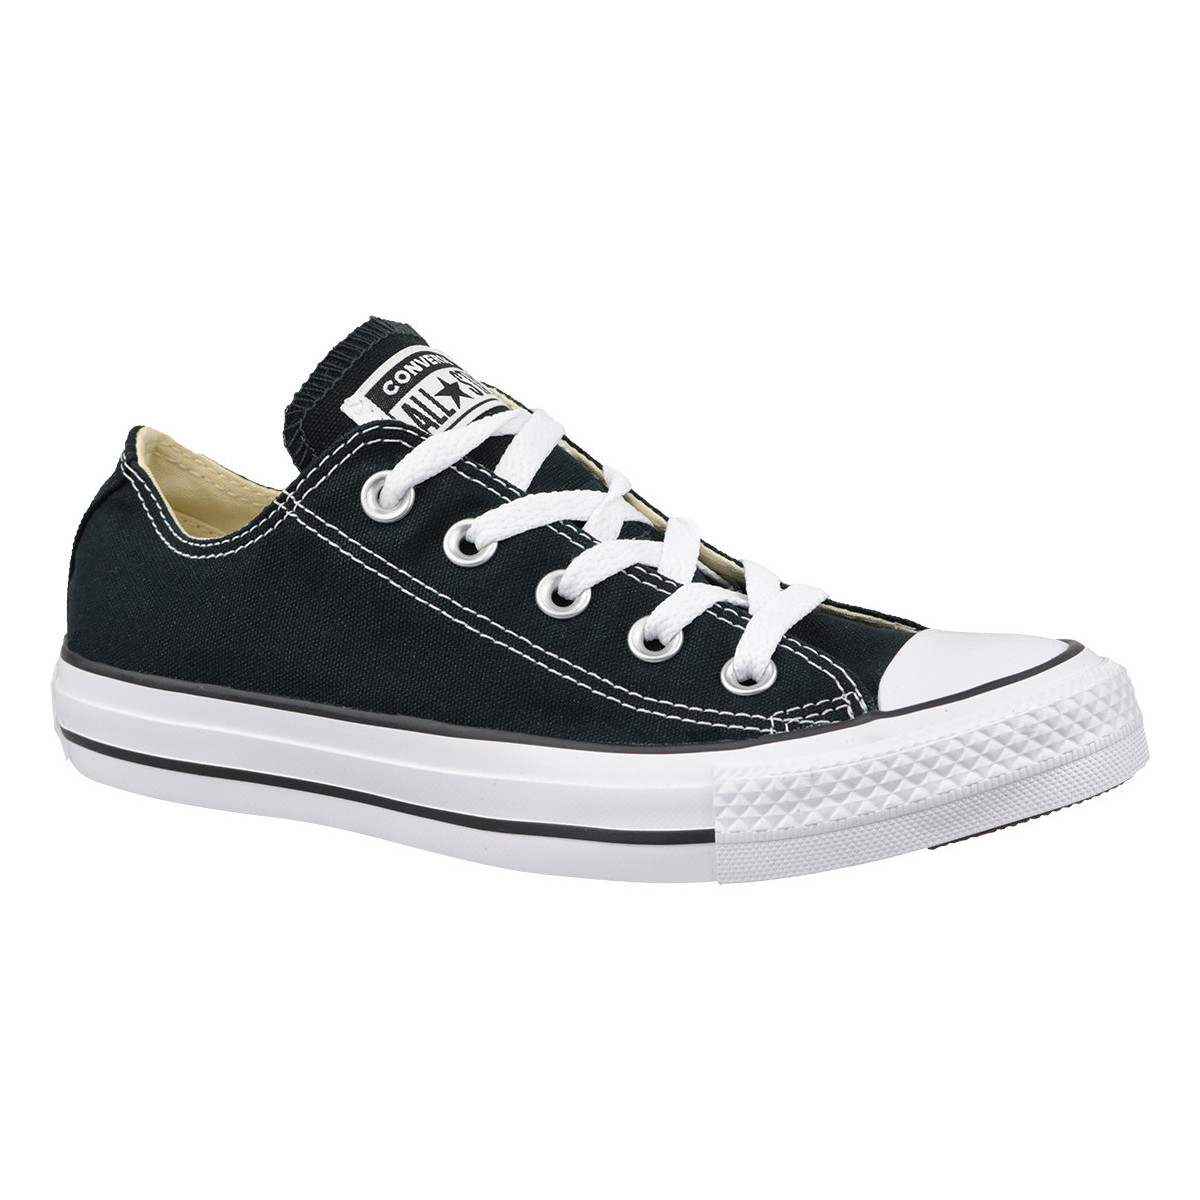 Sneakers Converse  C. Taylor All Star OX Black M9166C